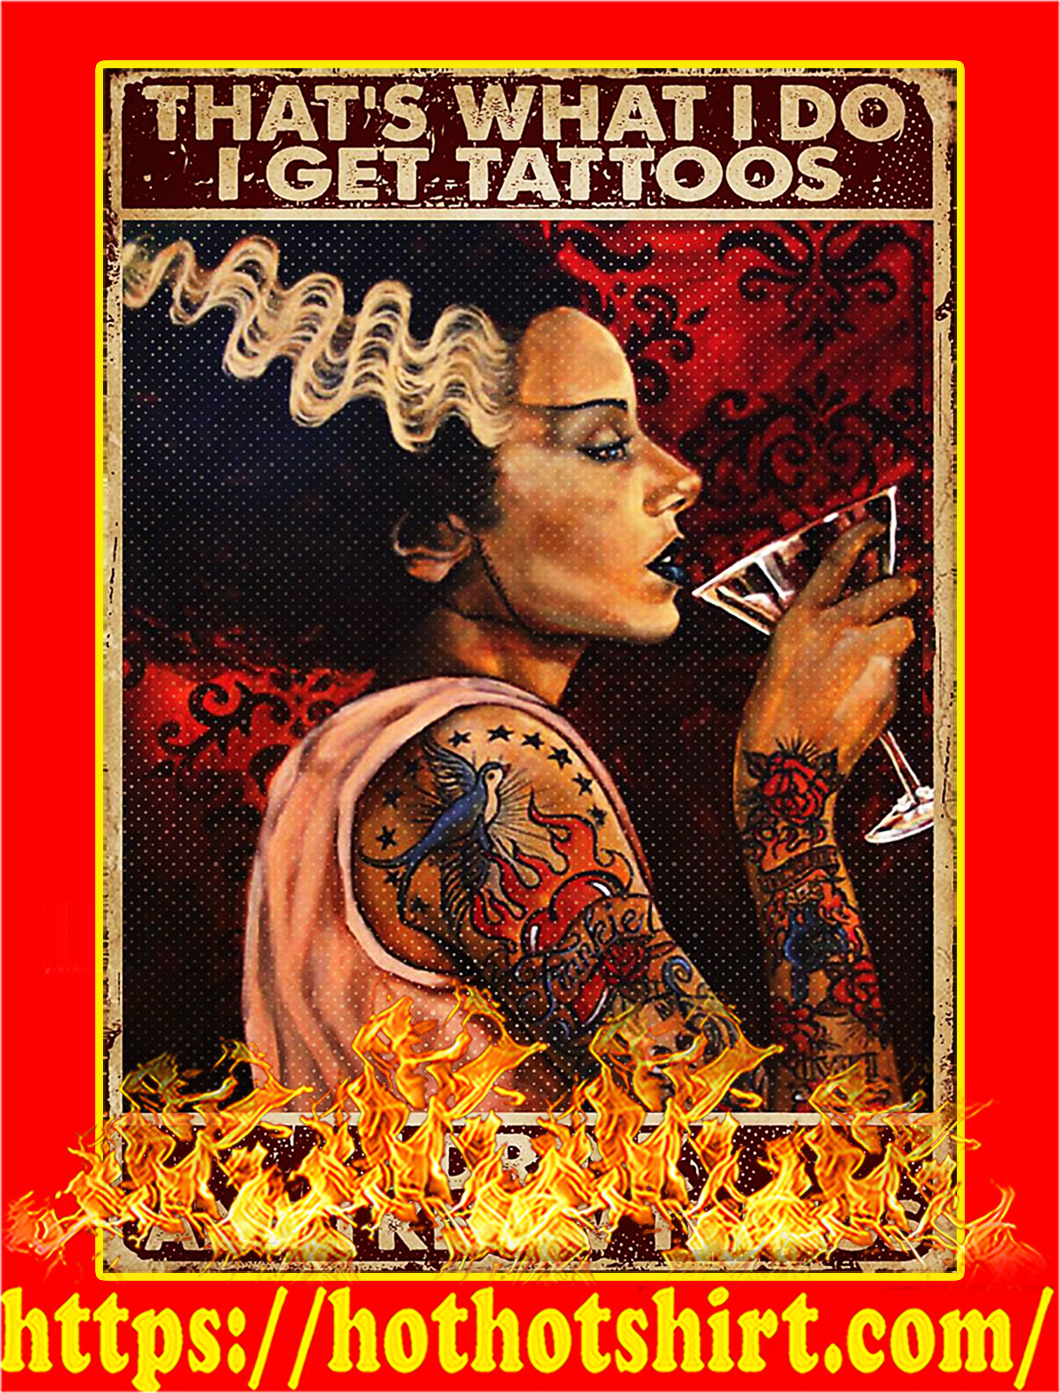 Tattoo woman that's what I do I get tattoos poster - A2